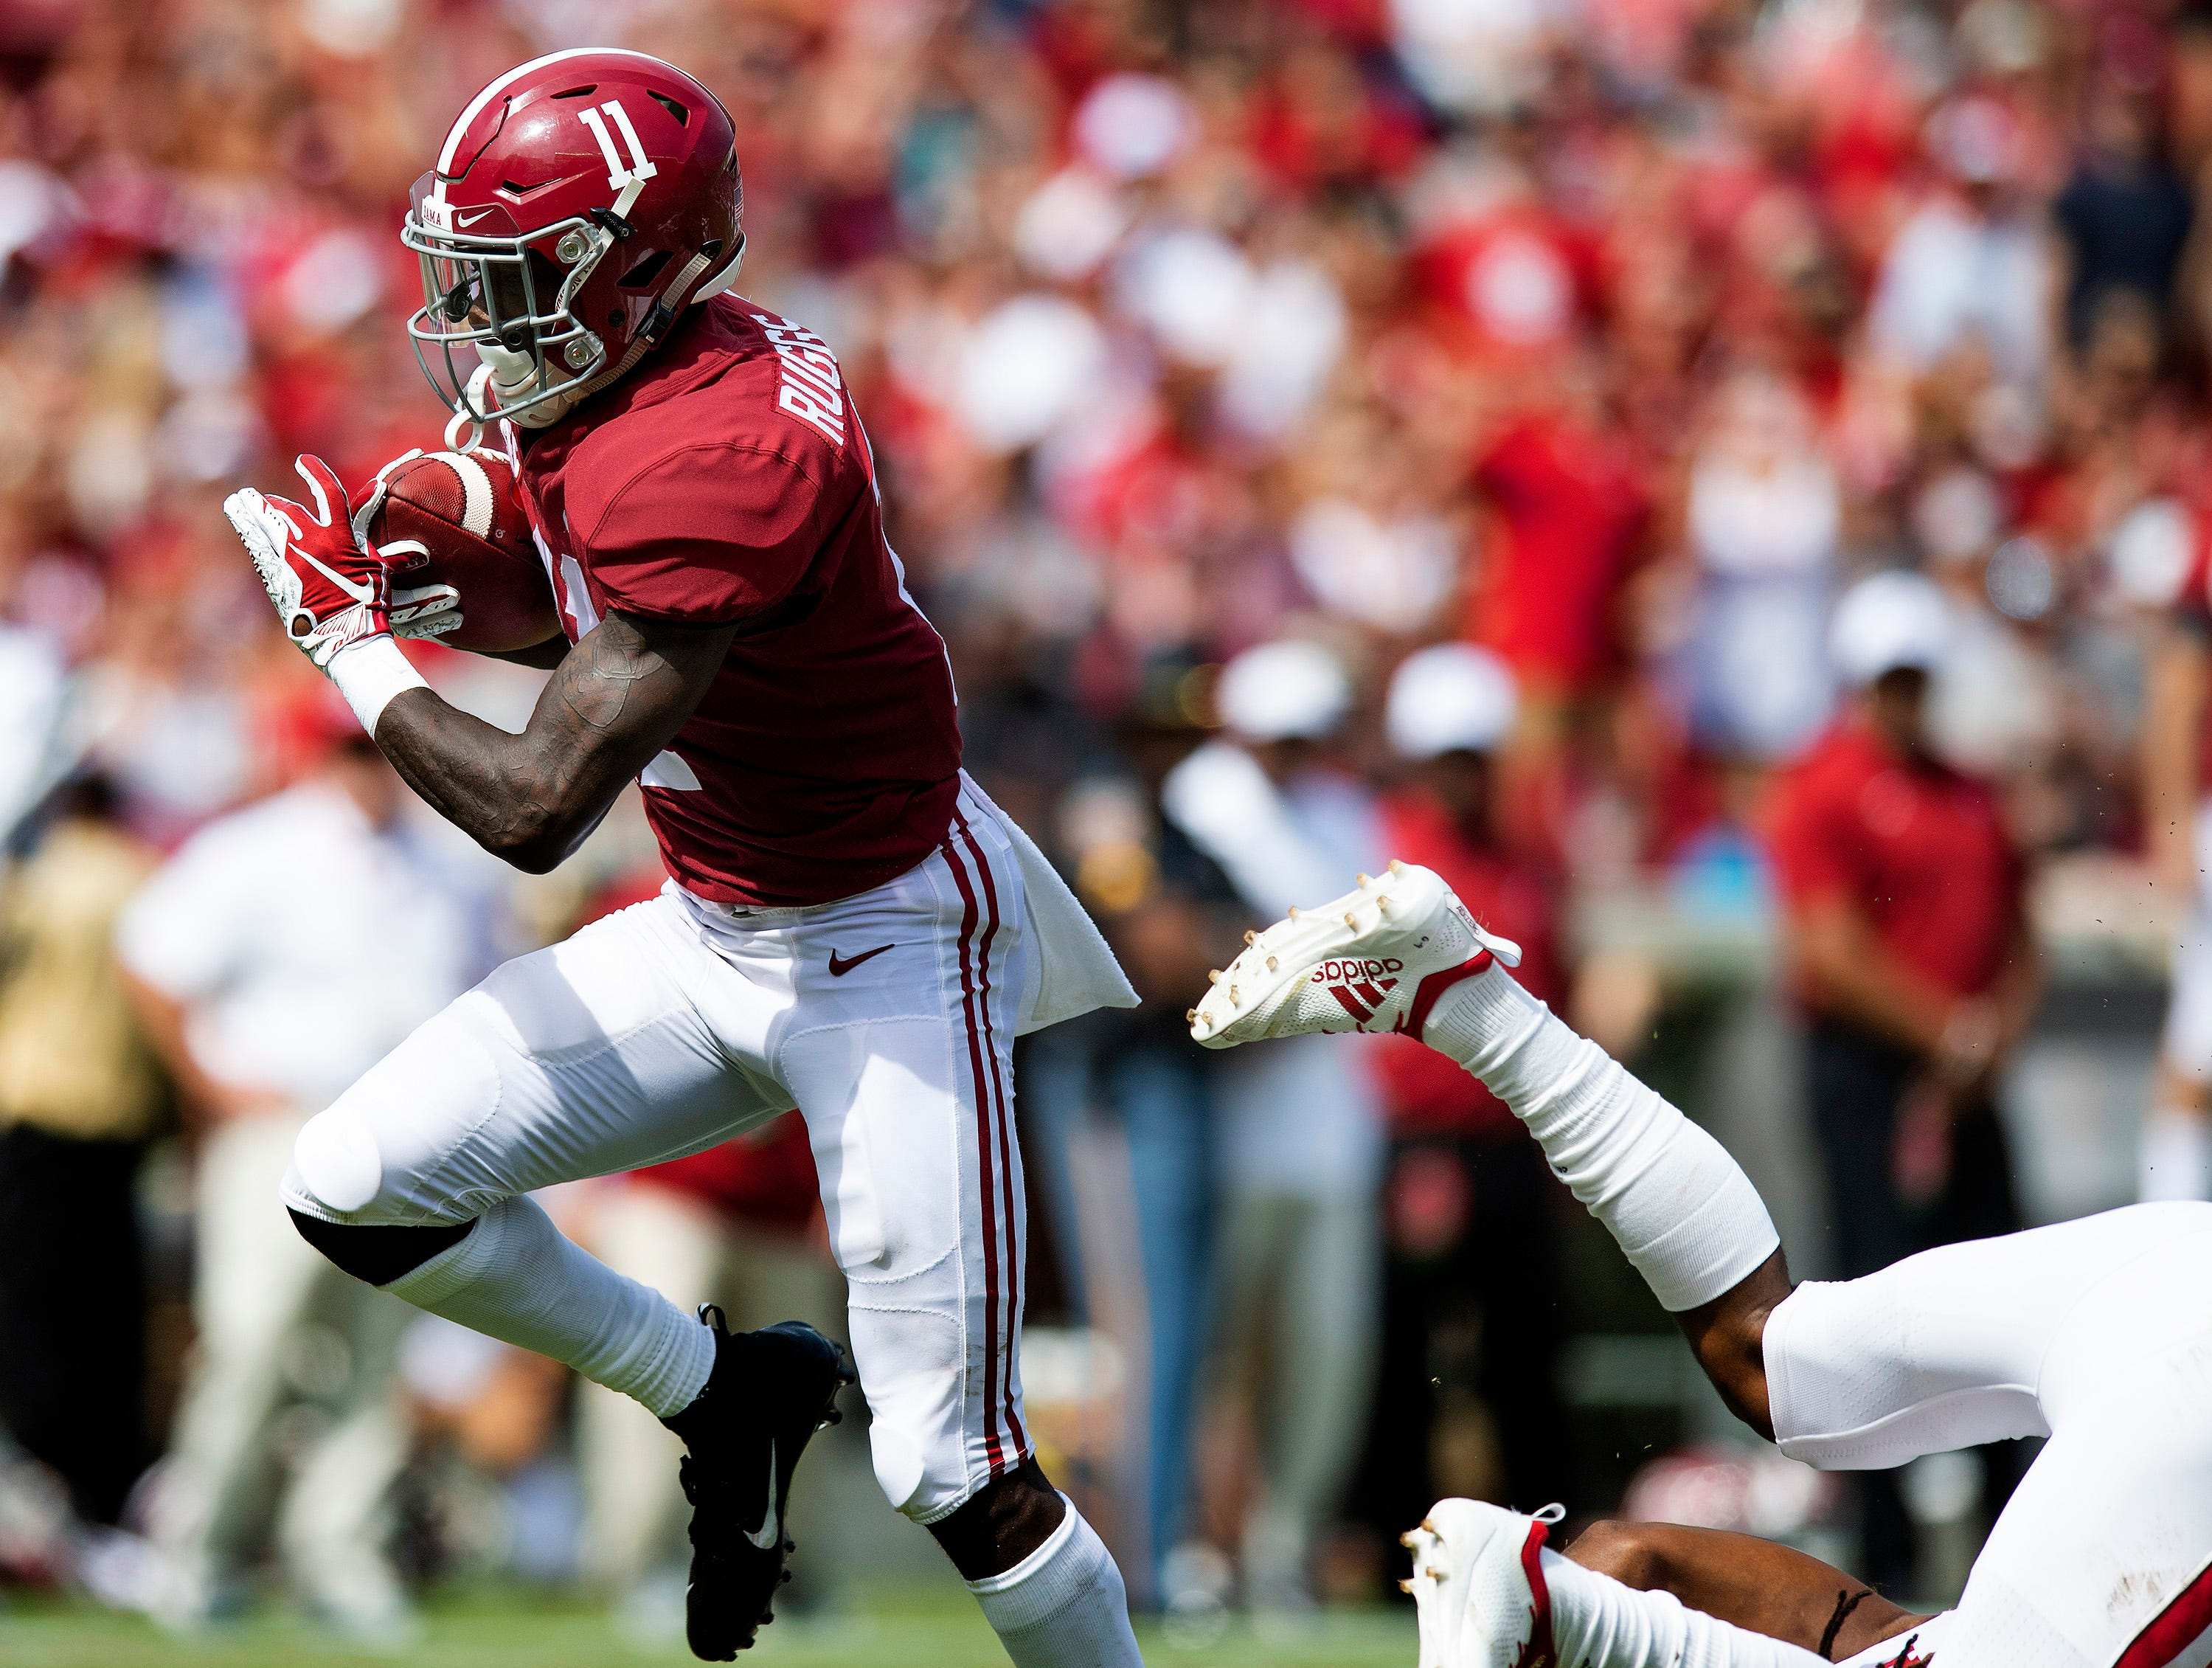 Alabama wide receiver Henry Ruggs, III, (11) breaks tackles against Louisiana on his way to his second touchdown in first half action at Bryant-Denny Stadium in Tuscaloosa, Ala., on Saturday September 29, 2018.